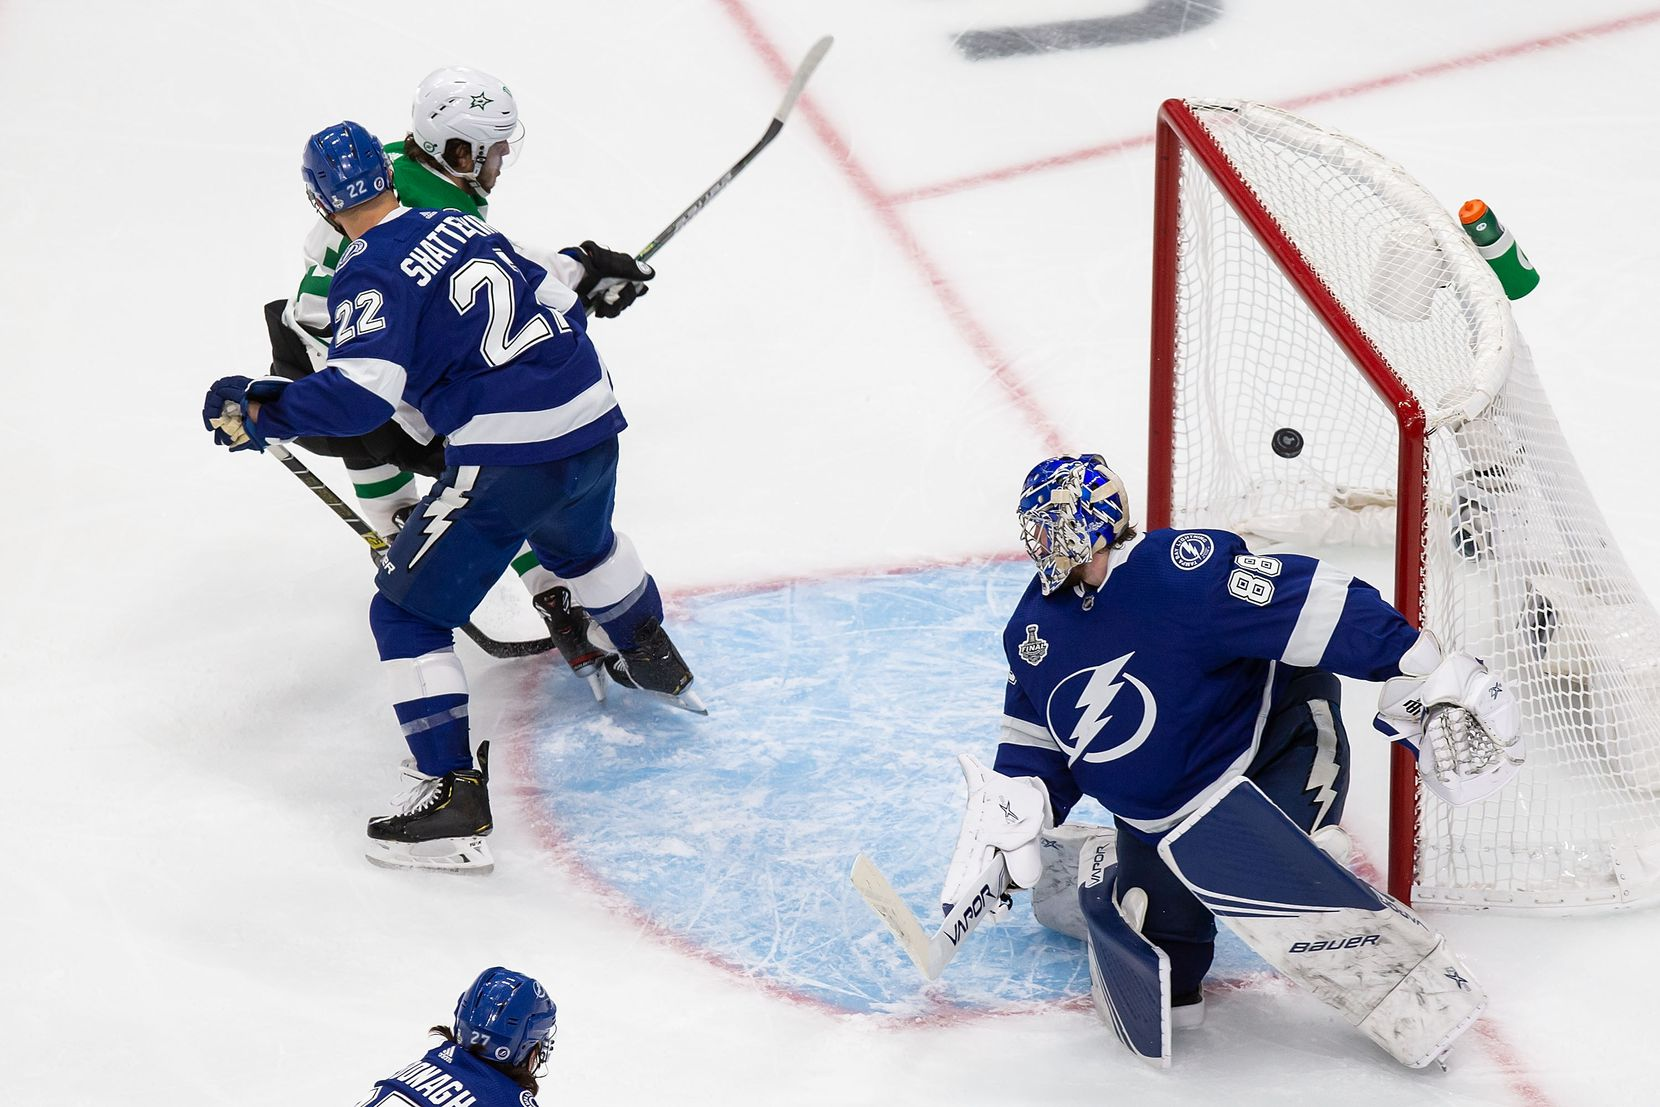 Mattias Janmark (13) of the Dallas Stars scores against goaltender Andrei Vasilevskiy (88) of the Tampa Bay Lightning during Game Two of the Stanley Cup Final at Rogers Place in Edmonton, Alberta, Canada on Monday, September 21, 2020. (Codie McLachlan/Special Contributor)